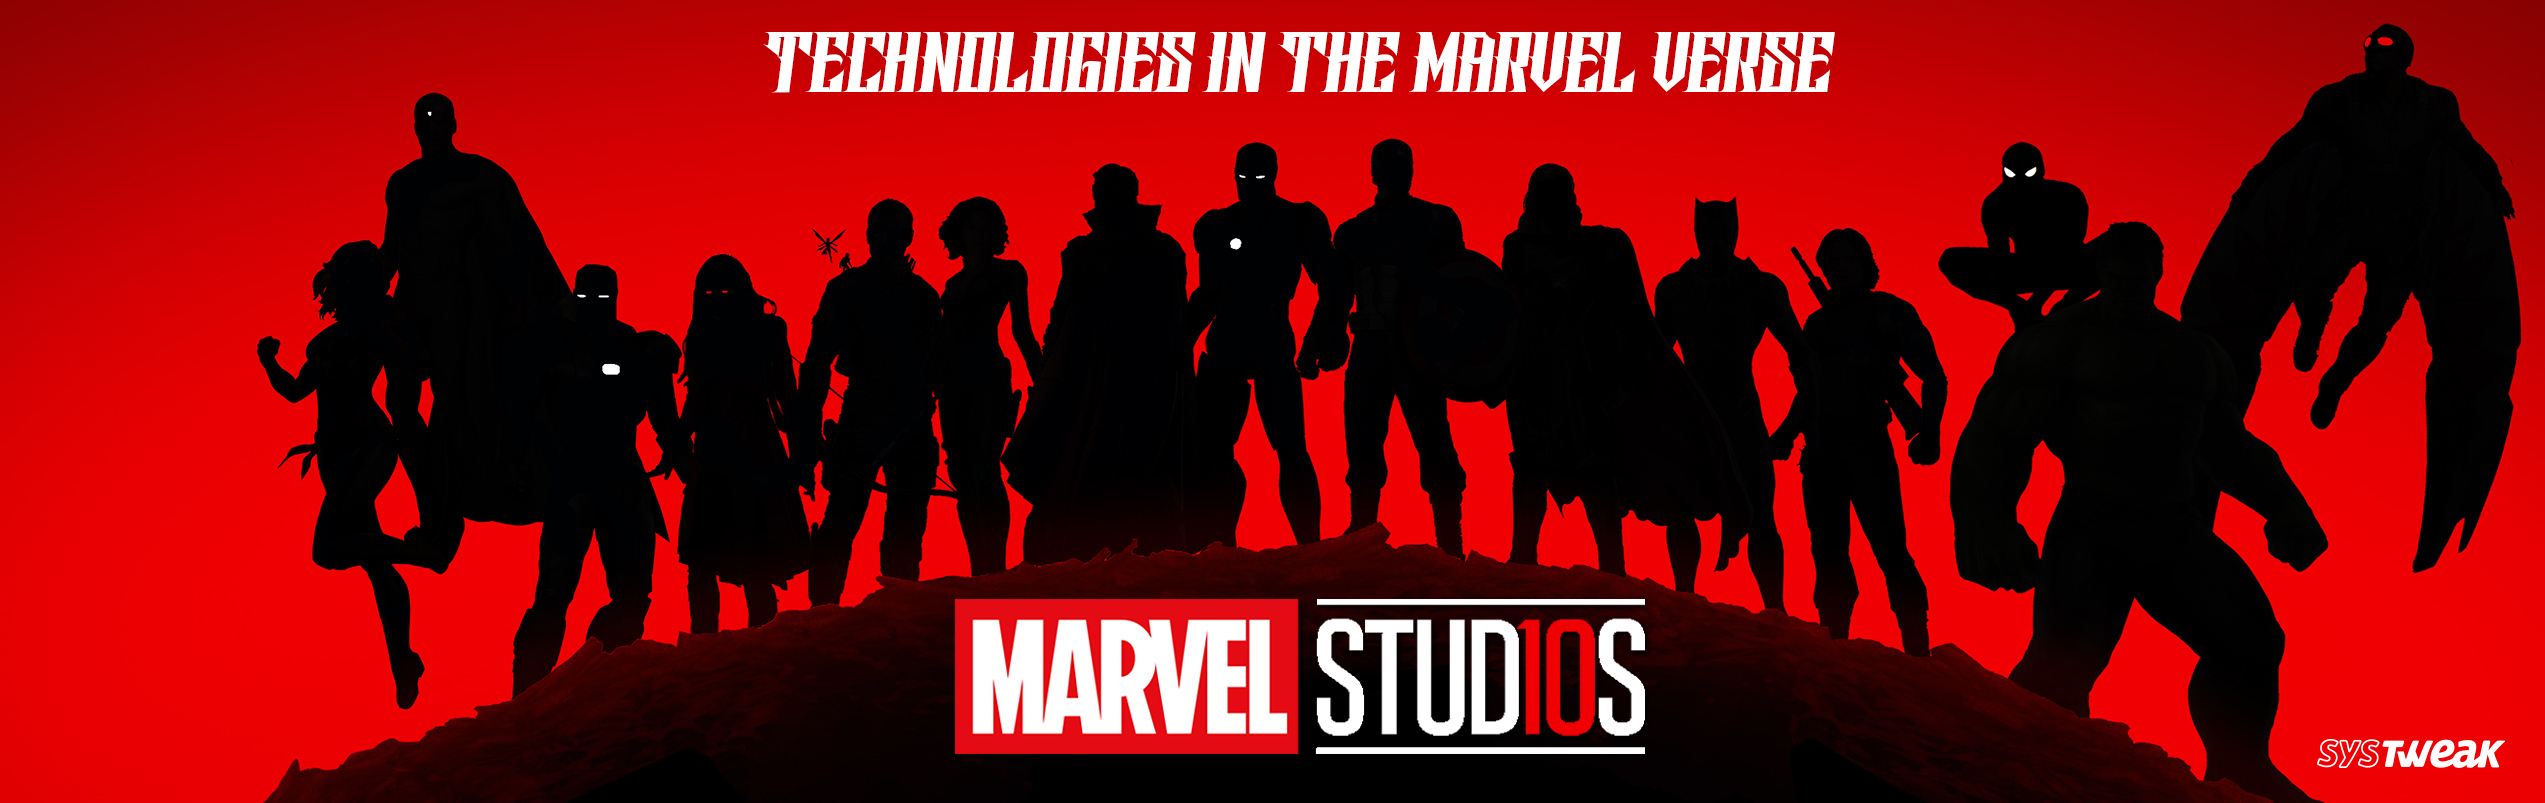 Friday Essentials: The Top 5 Technologies in Marvel Verse